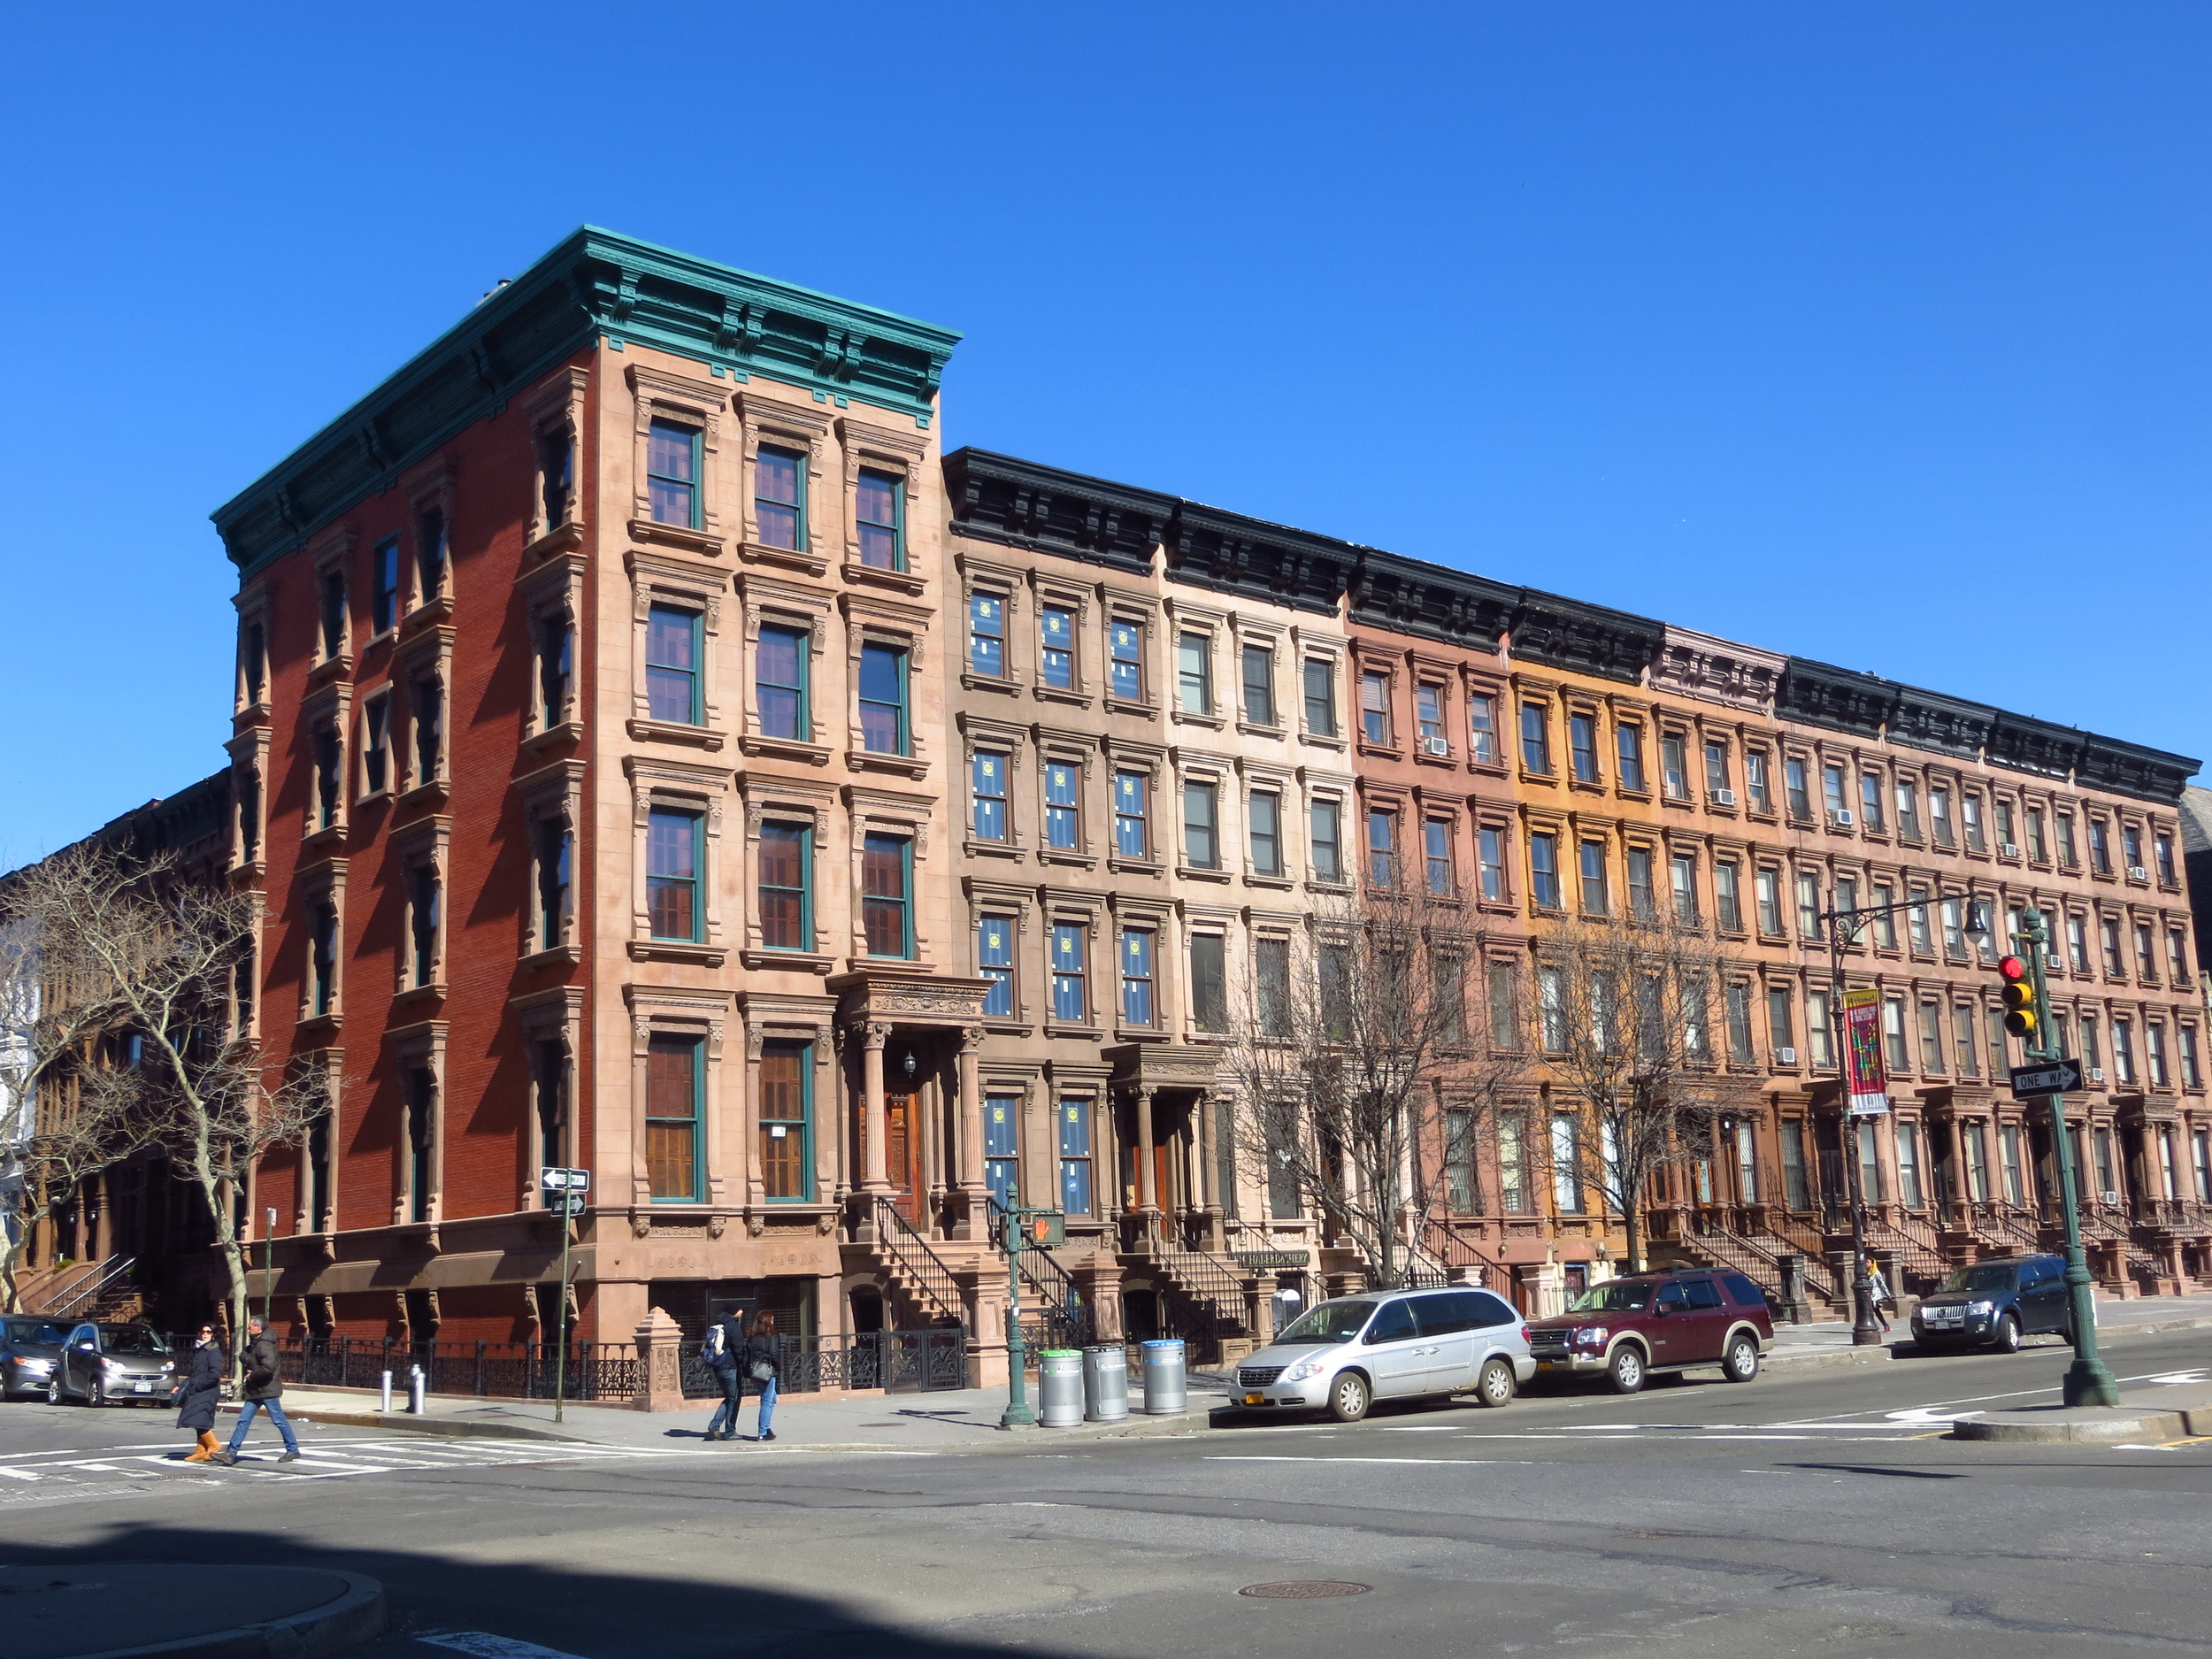 Cool block of brownstones from a slightly different angle